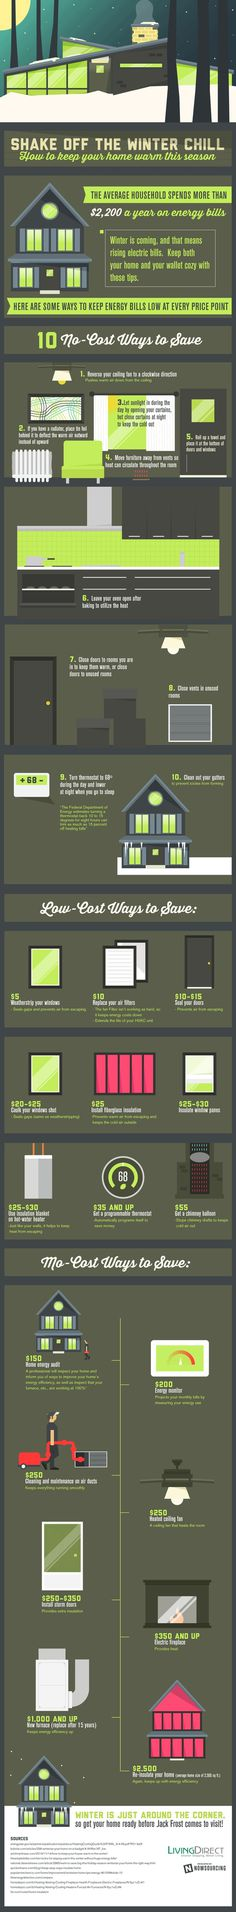 Learn some free and inexpensive ways to keep the cold out and the warm in.This infographic can help you winterize your home! #winterizing #savings #home #use #energy